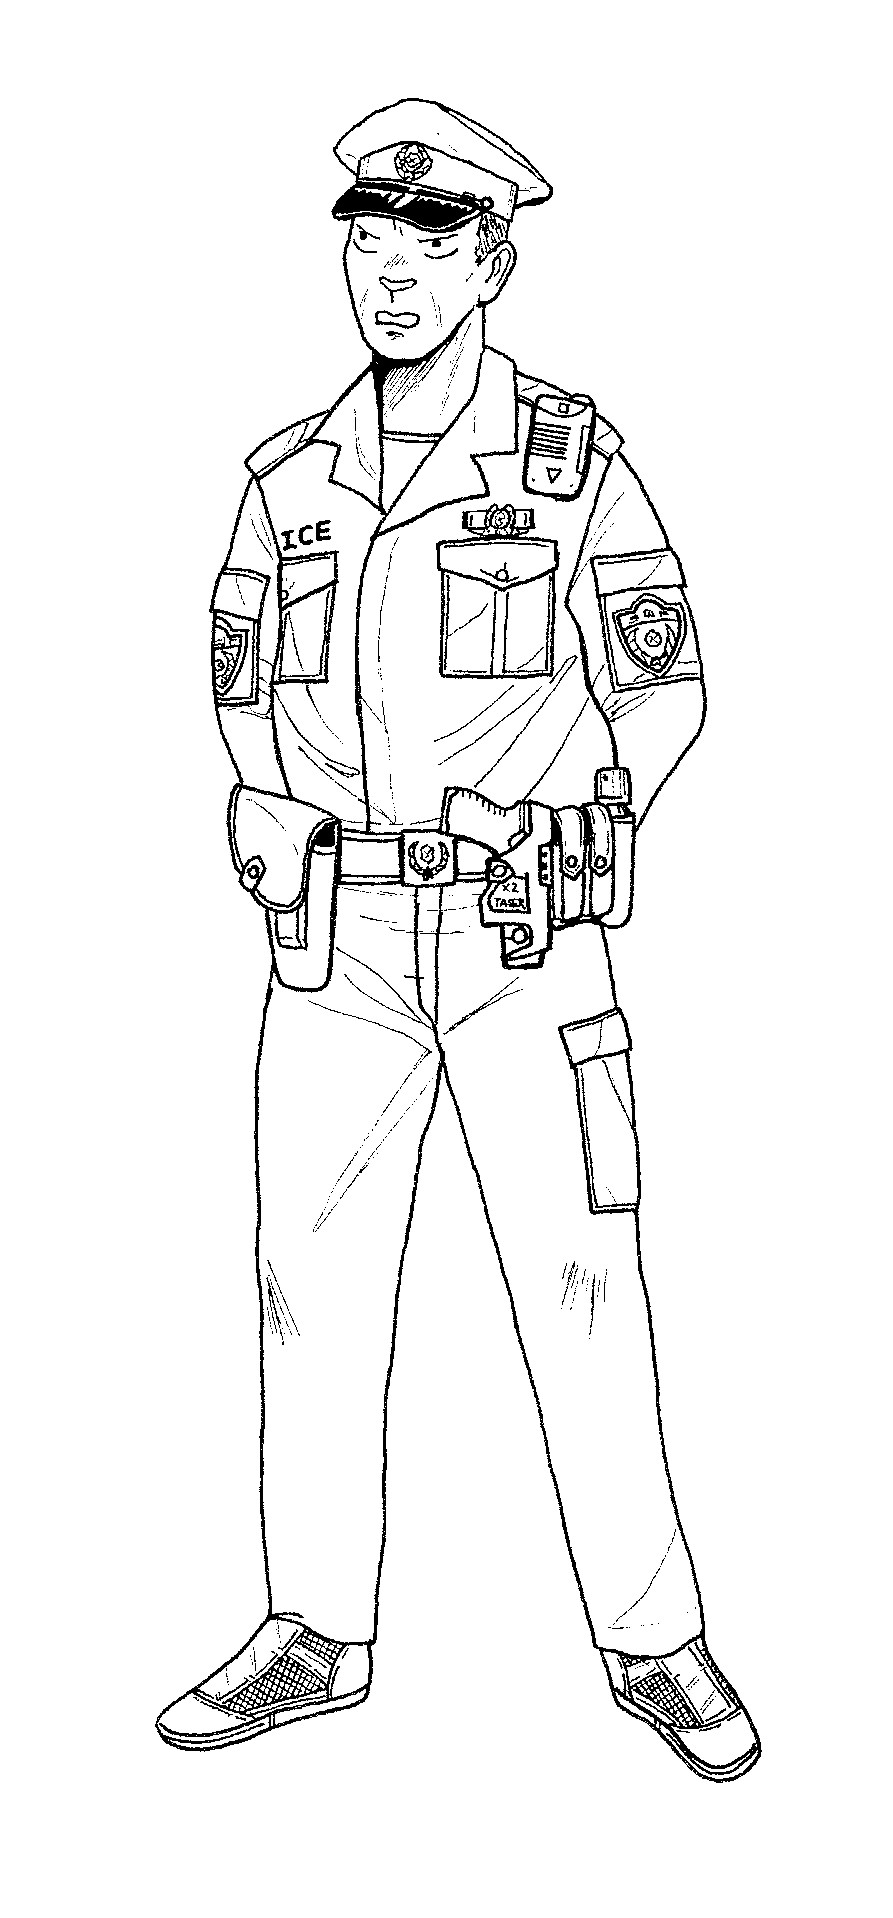 police coloring pages judy hopps police coloring page wecoloringpagecom pages coloring police